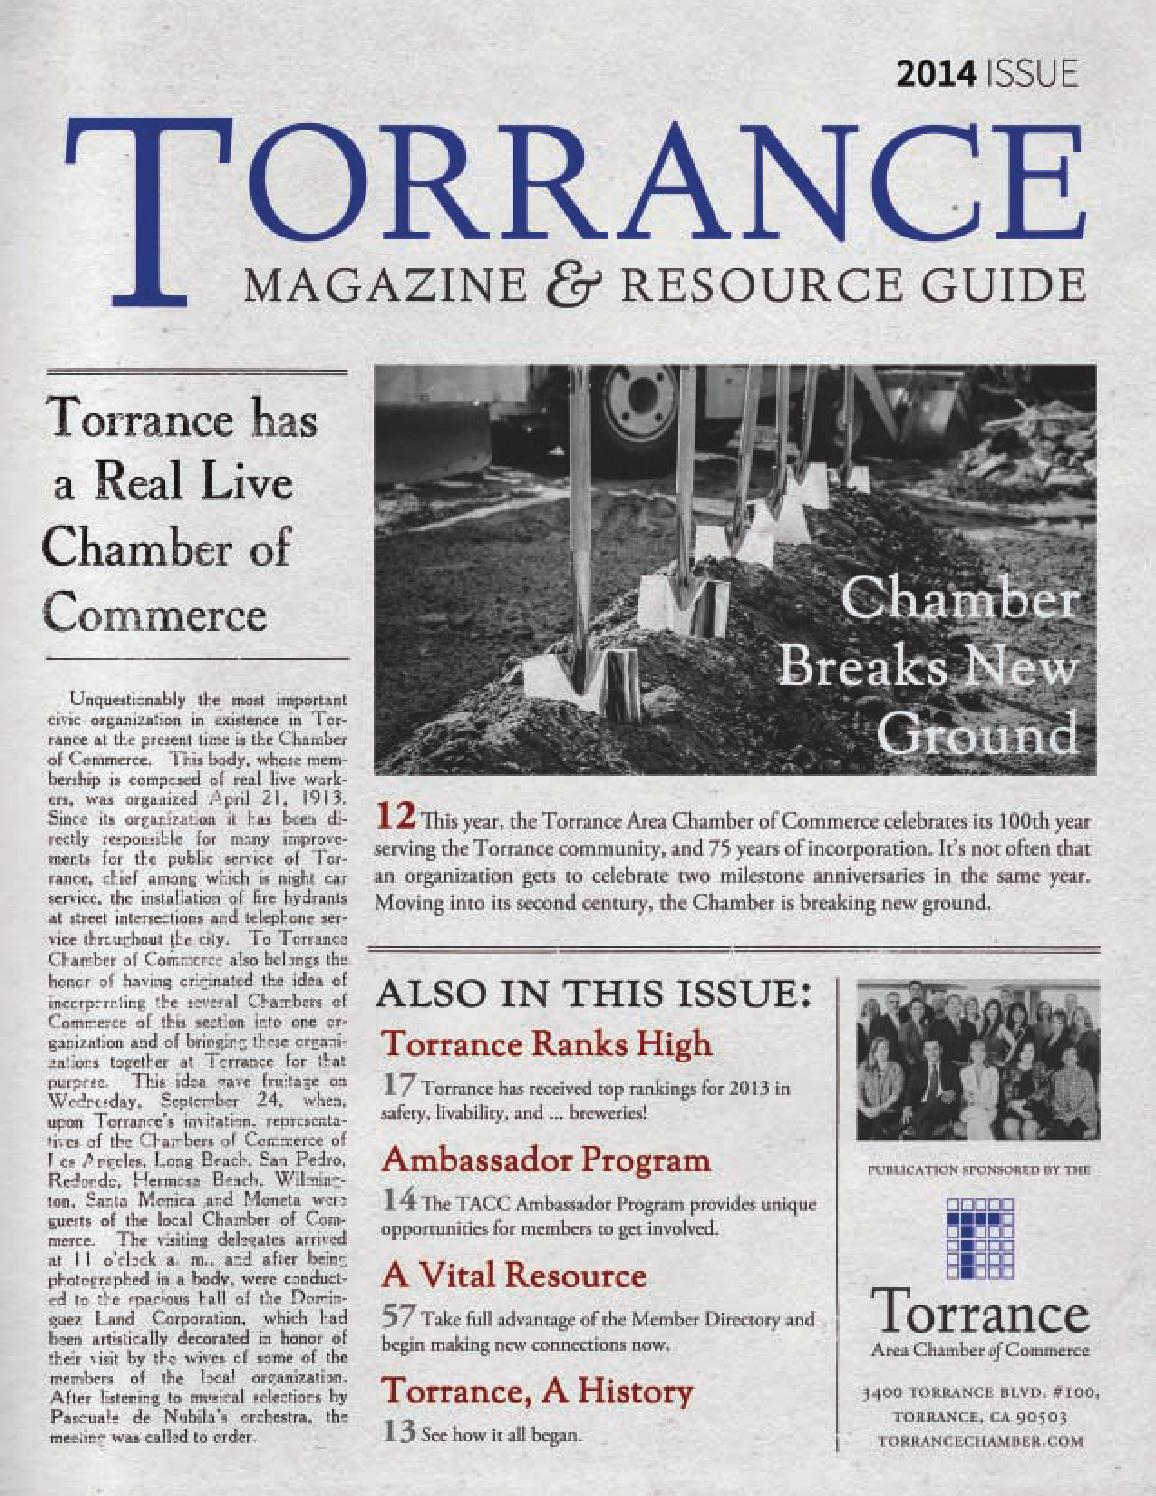 2014 Torrance Magazine & Resource Guide by Torrance Area